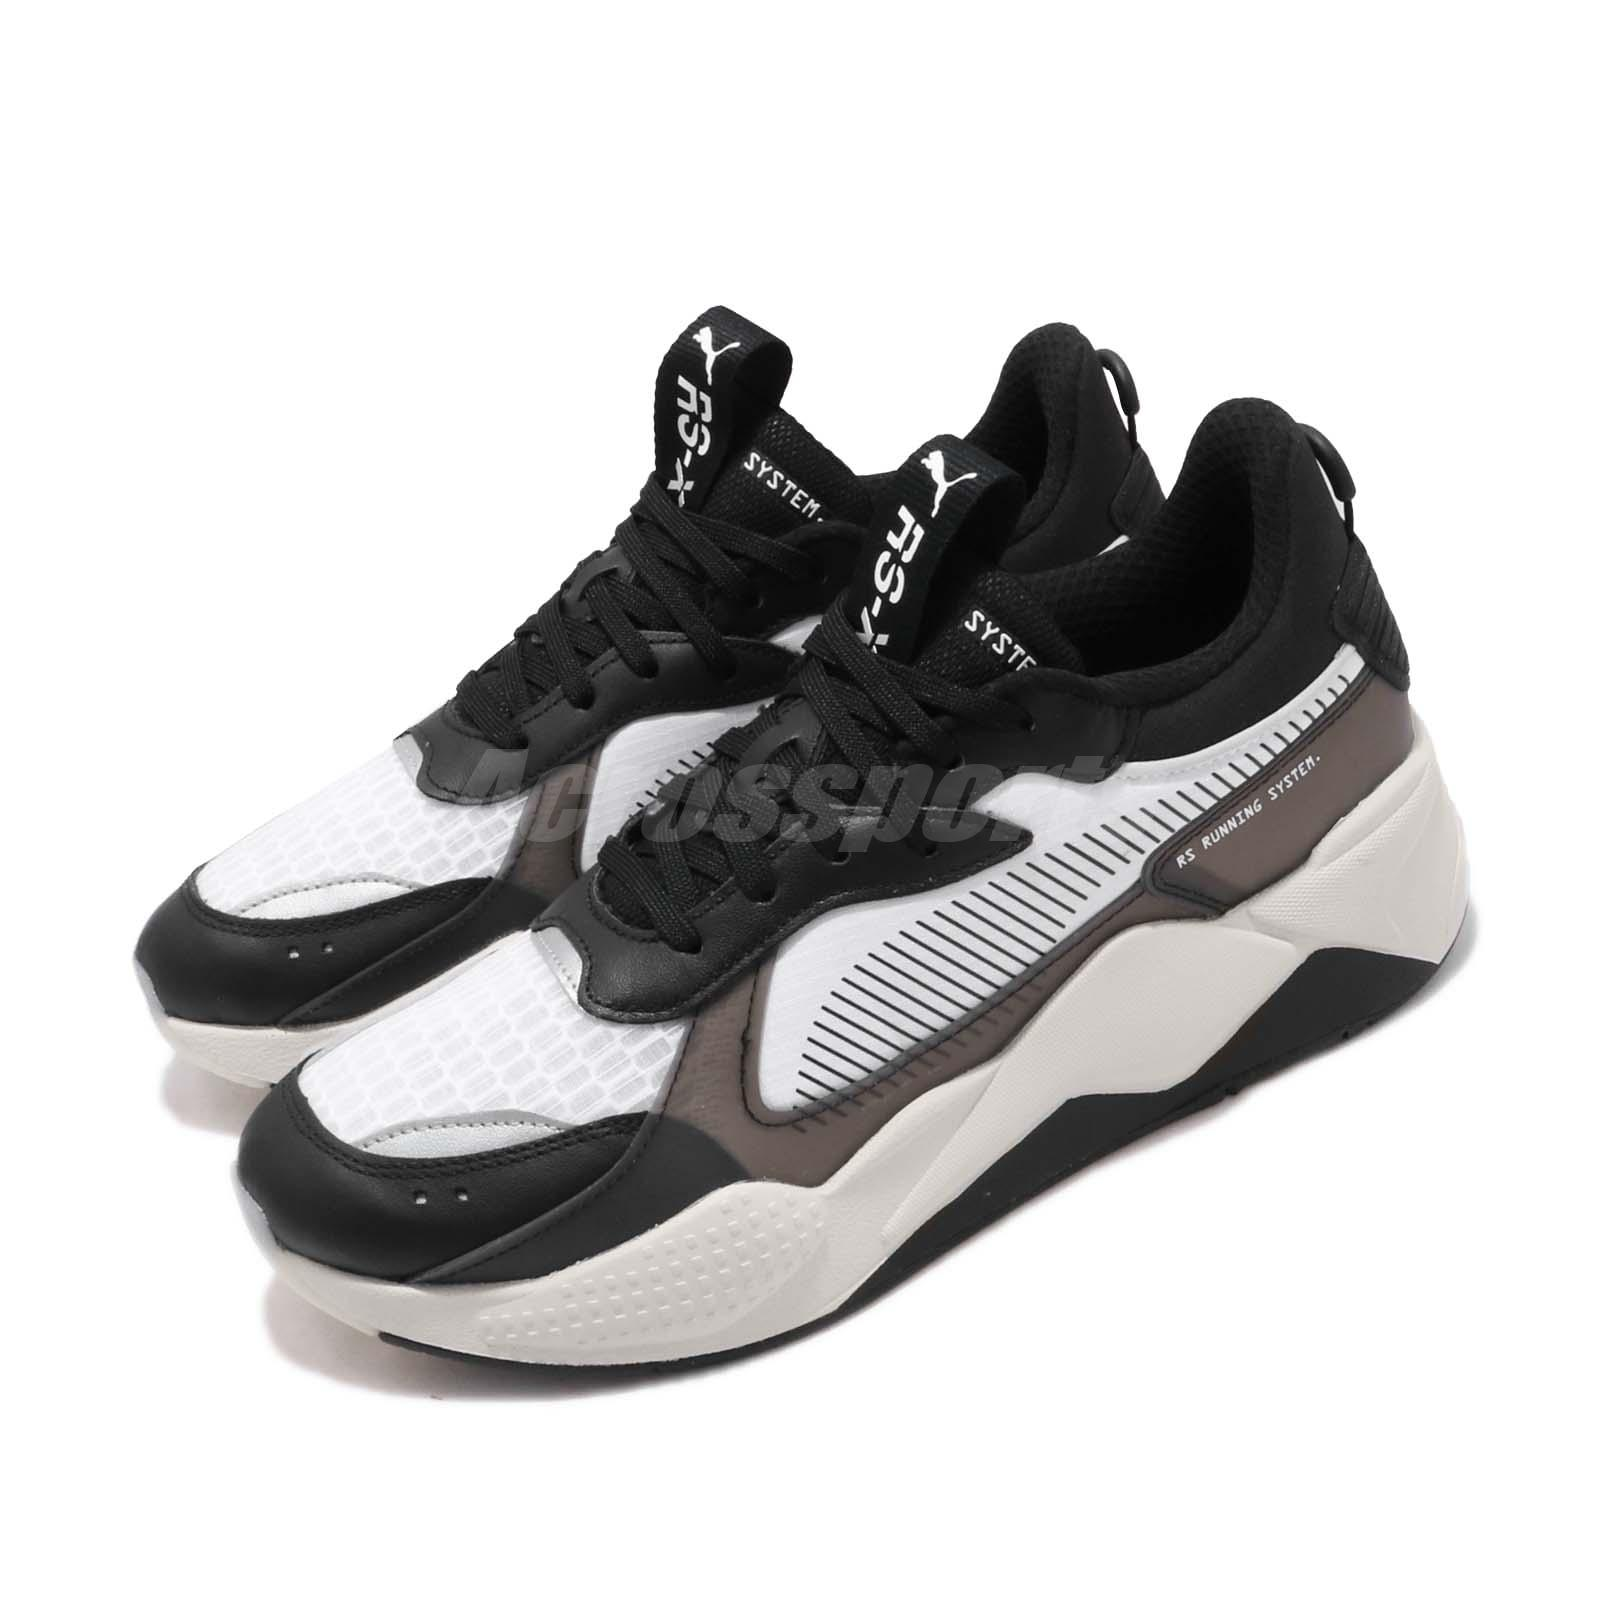 Details about Puma RS-X Tech Running System Black Grey White Men Women  Unisex Shoes 369329-01